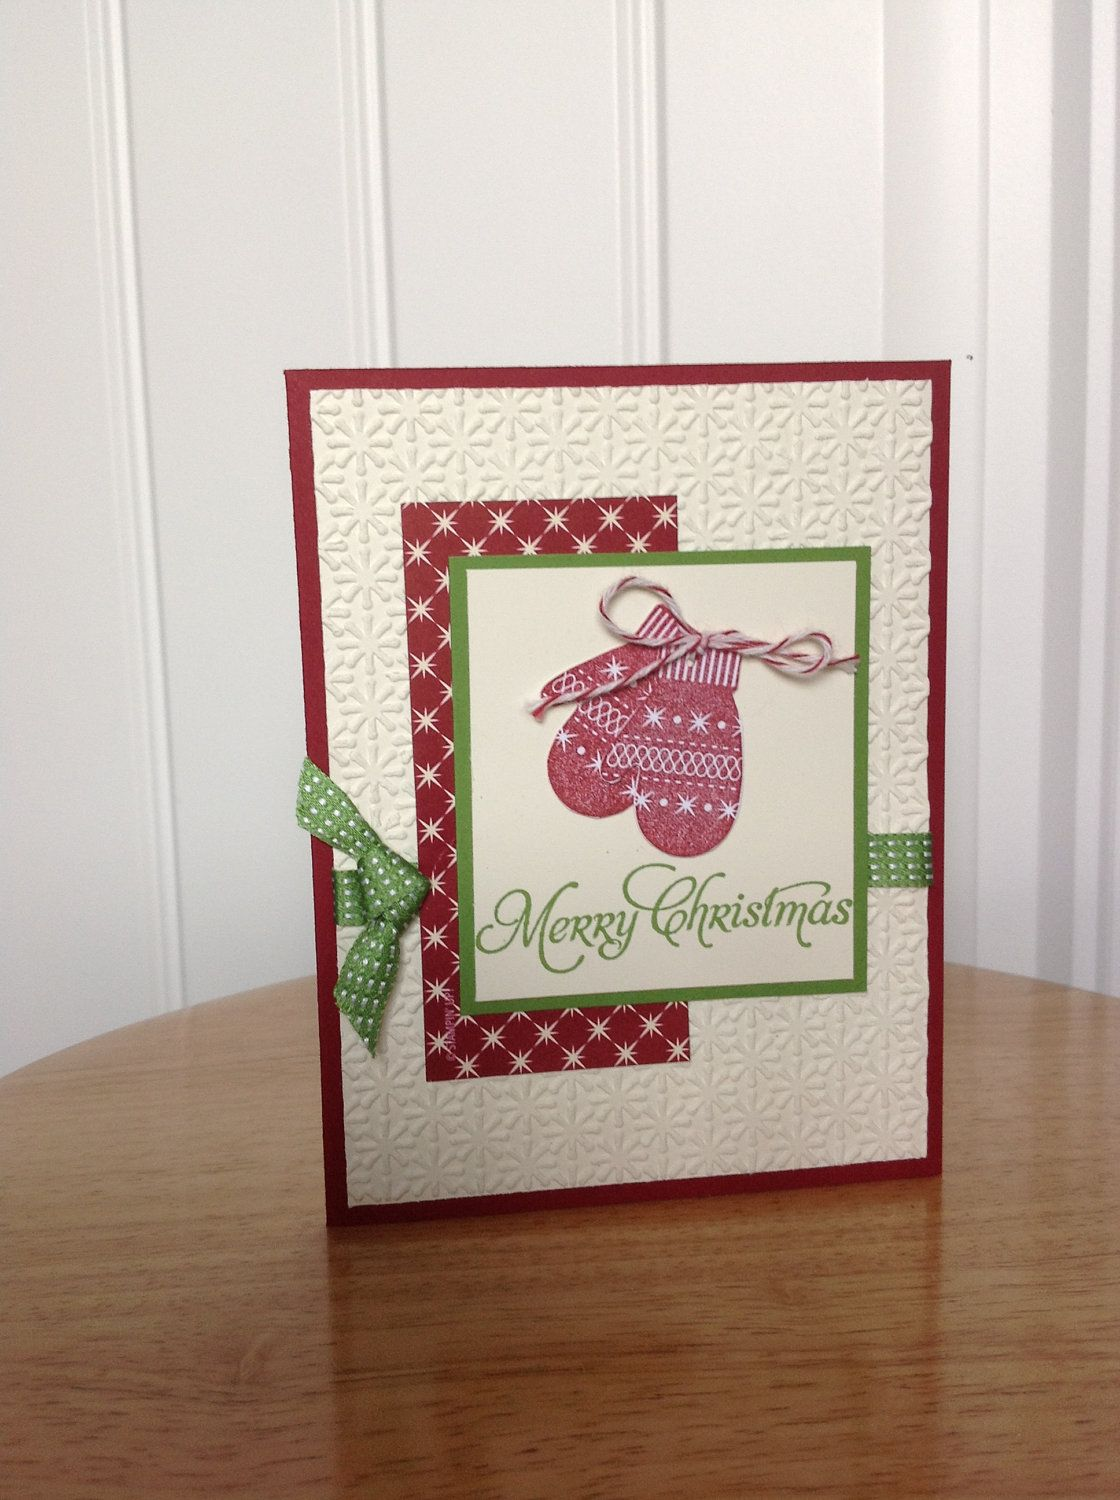 Stampin Up Christmas card winter mitten by treehouse05 on Etsy ...